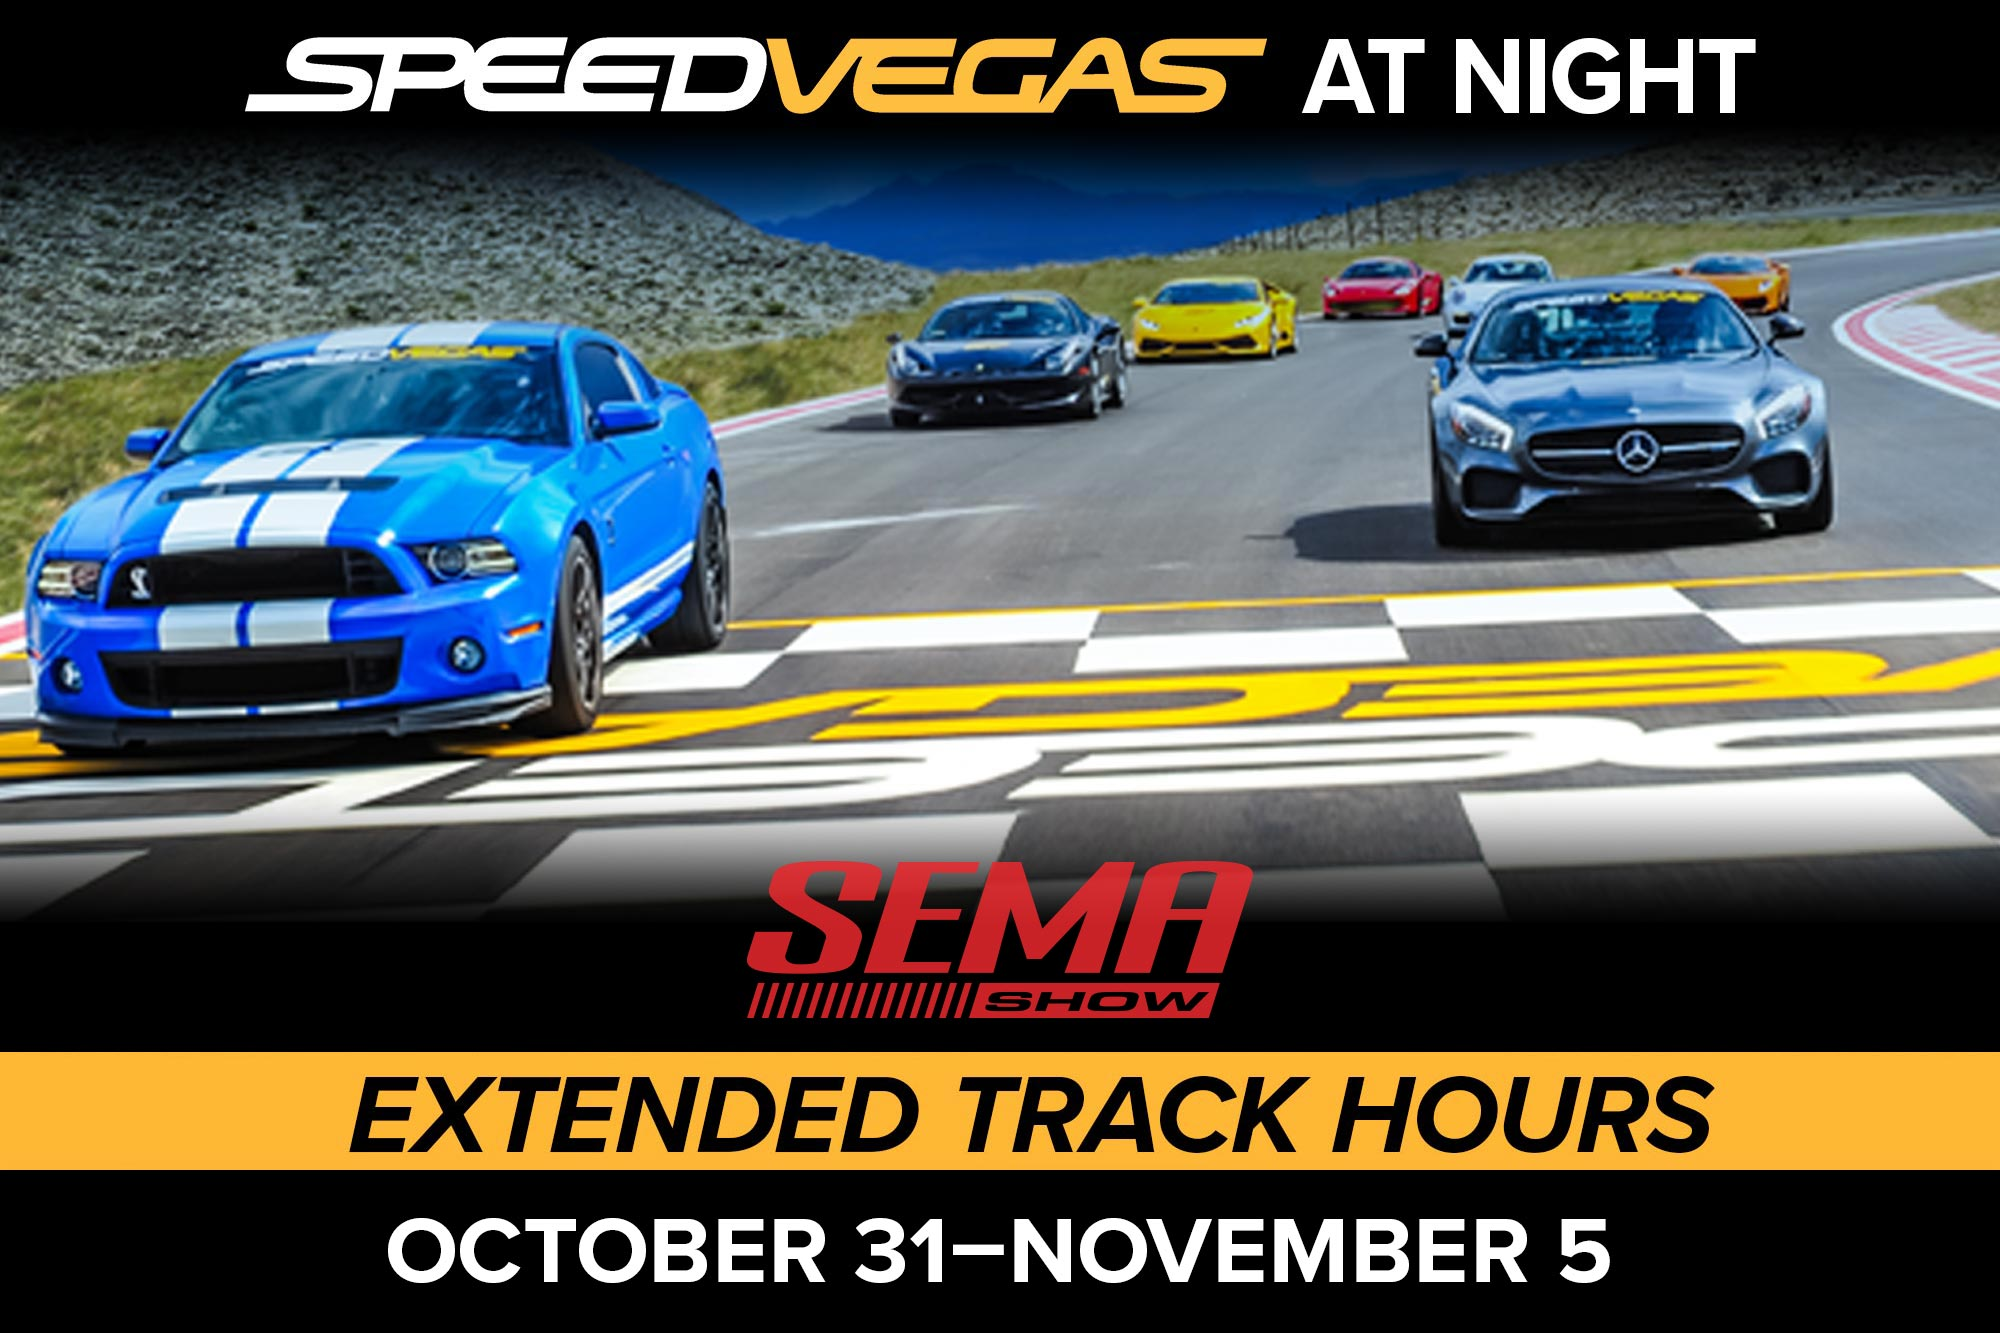 Drive the exotic car of your dreams on a real racetrack like never before! Be one of the first to experience SPEEDVEGAS After Dark. SPEEDVEGAS will be open until 10pm from Oct 31st - November 5th. SEMA attendees with lanyards will receive a complimentary lap with the purchase of any driving experience.